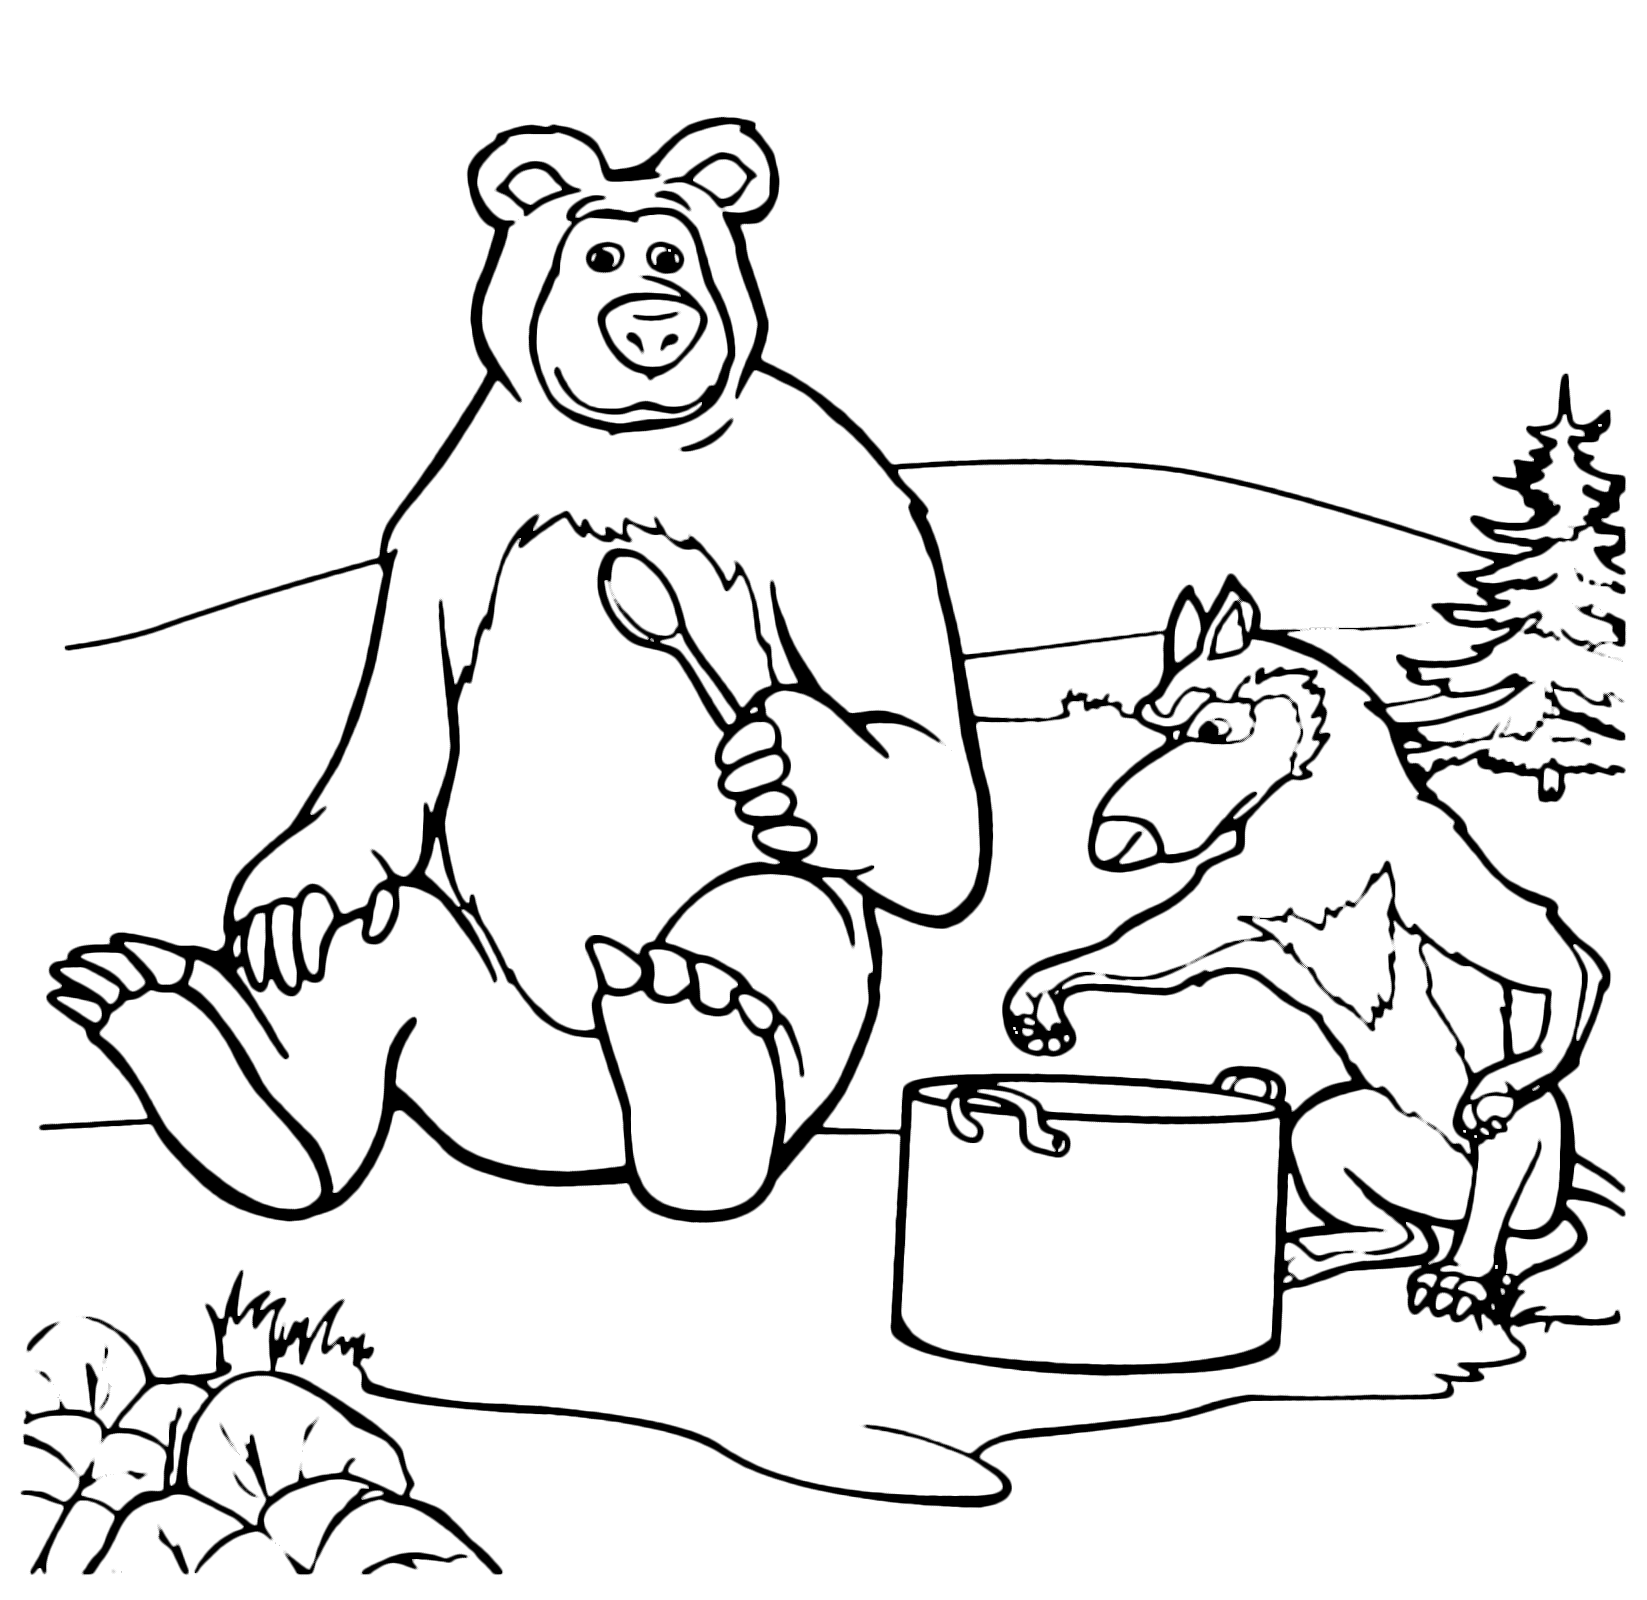 Masha And The Bear Coloring Pages - Coloring Home